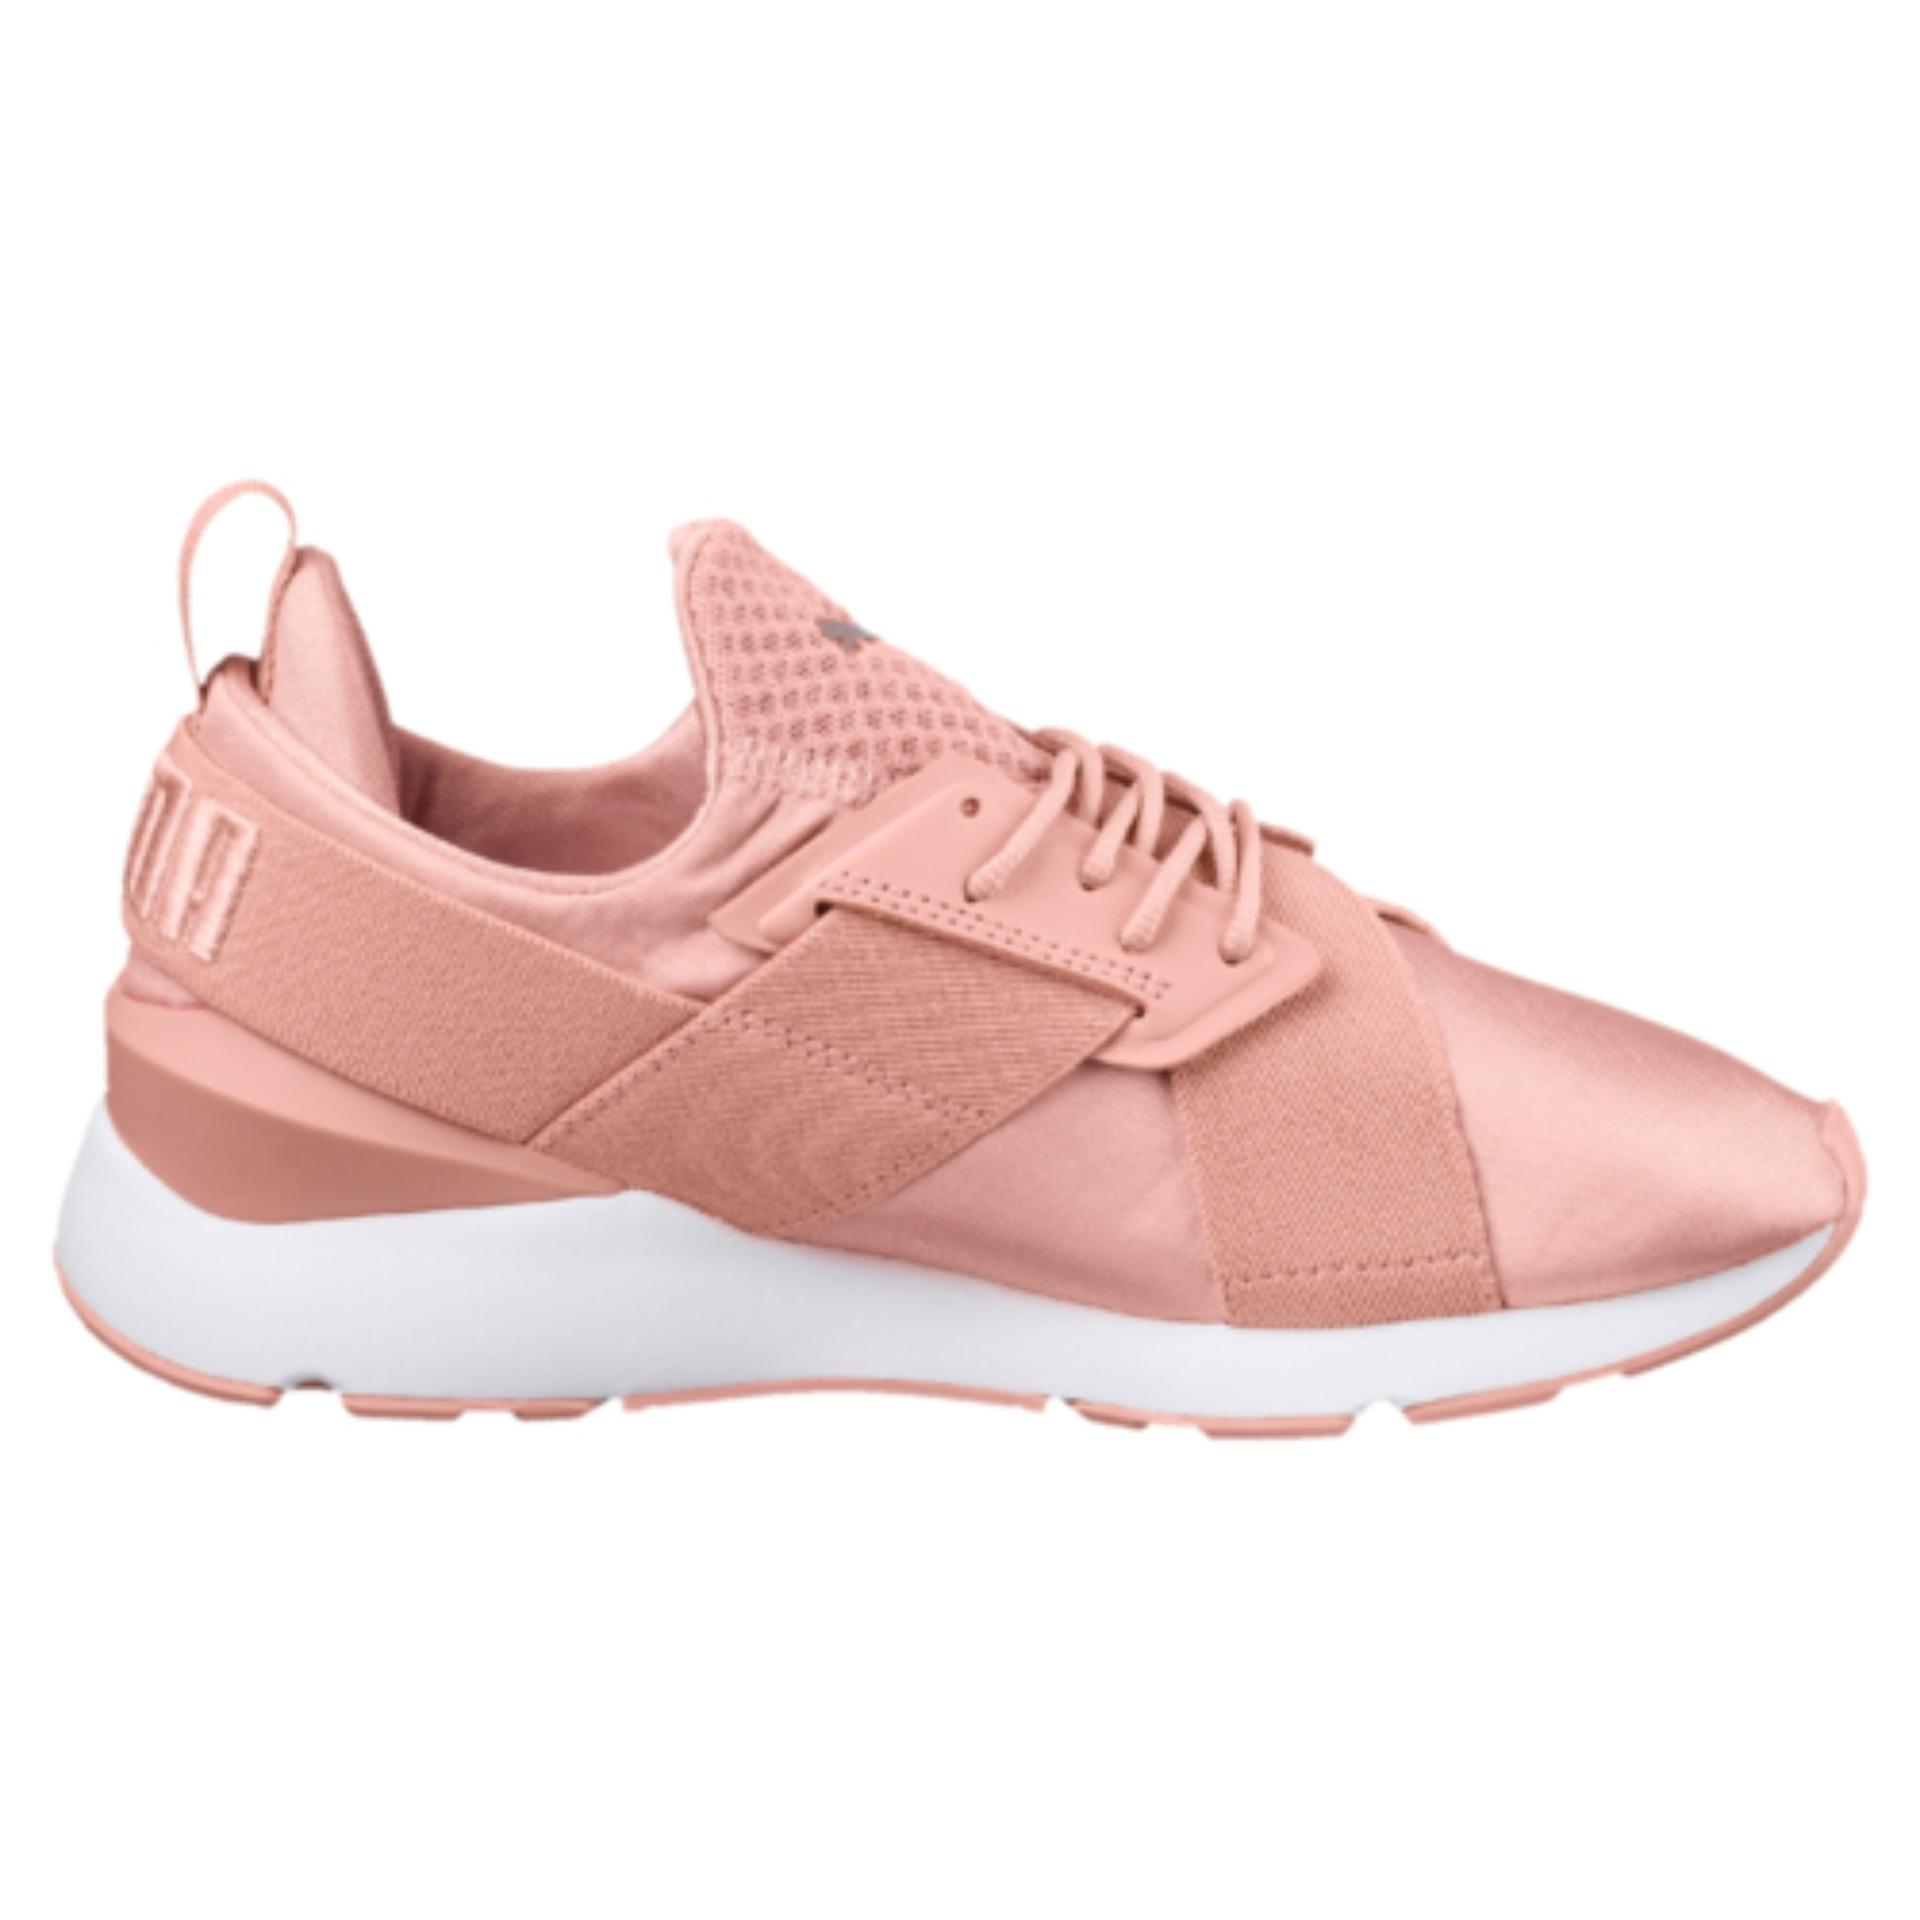 Best Offer Puma Muse Satin Ep Women Sneakers Peach Beige Puma Whitepeach Beige Puma White